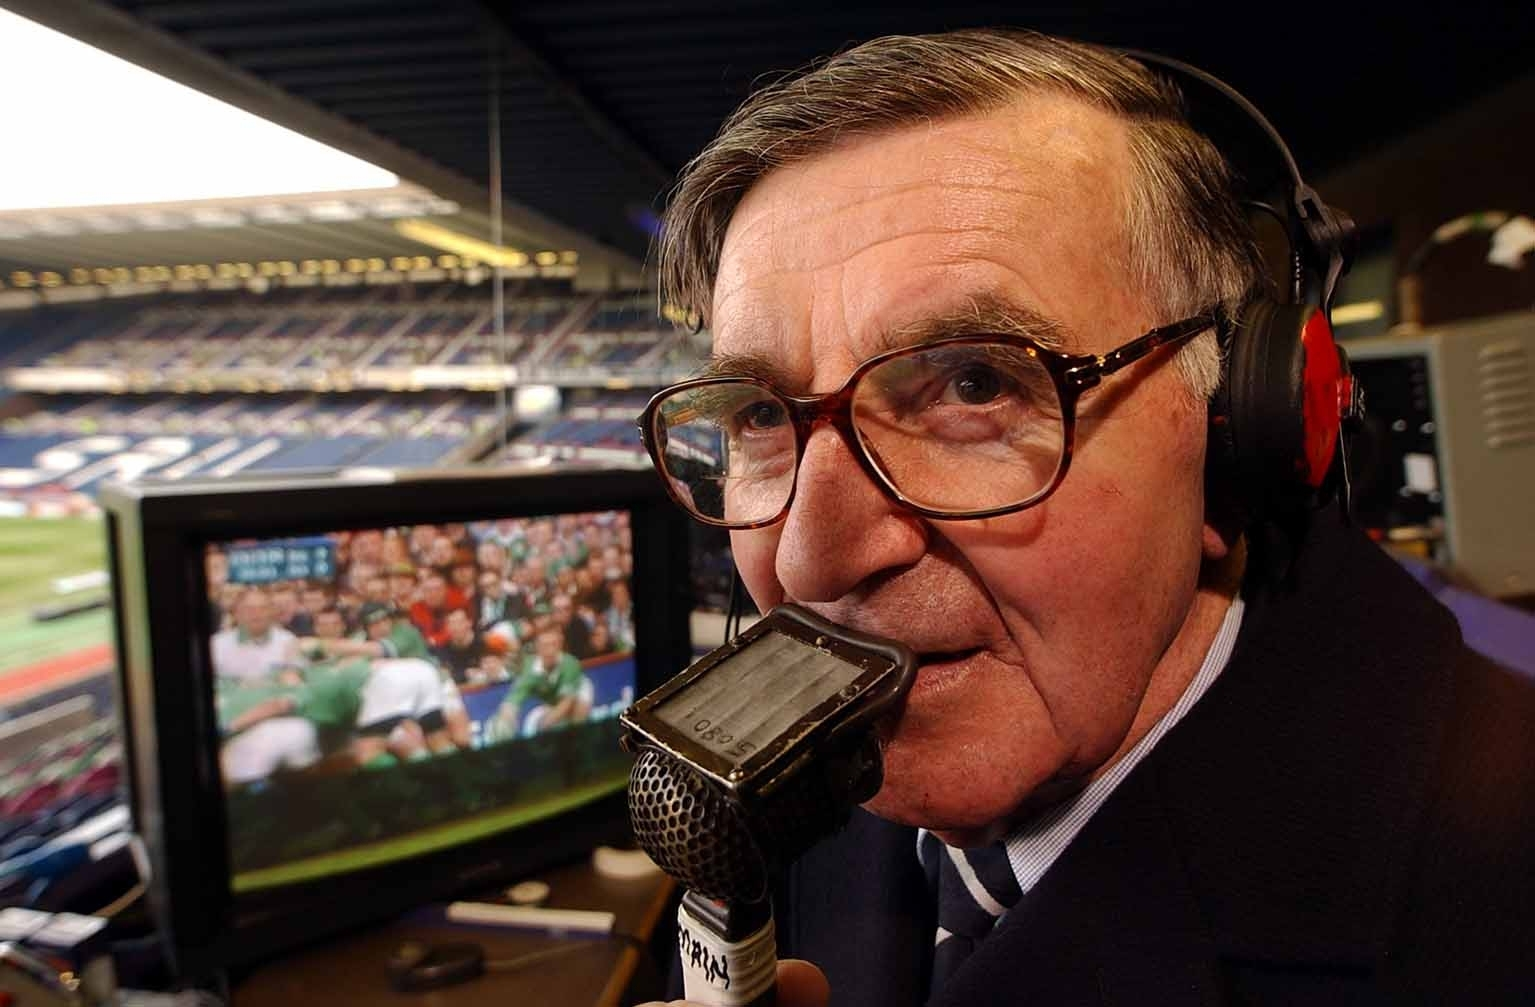 Commentator Bill McLaren had an encyclopaedic knowledge of his subject.